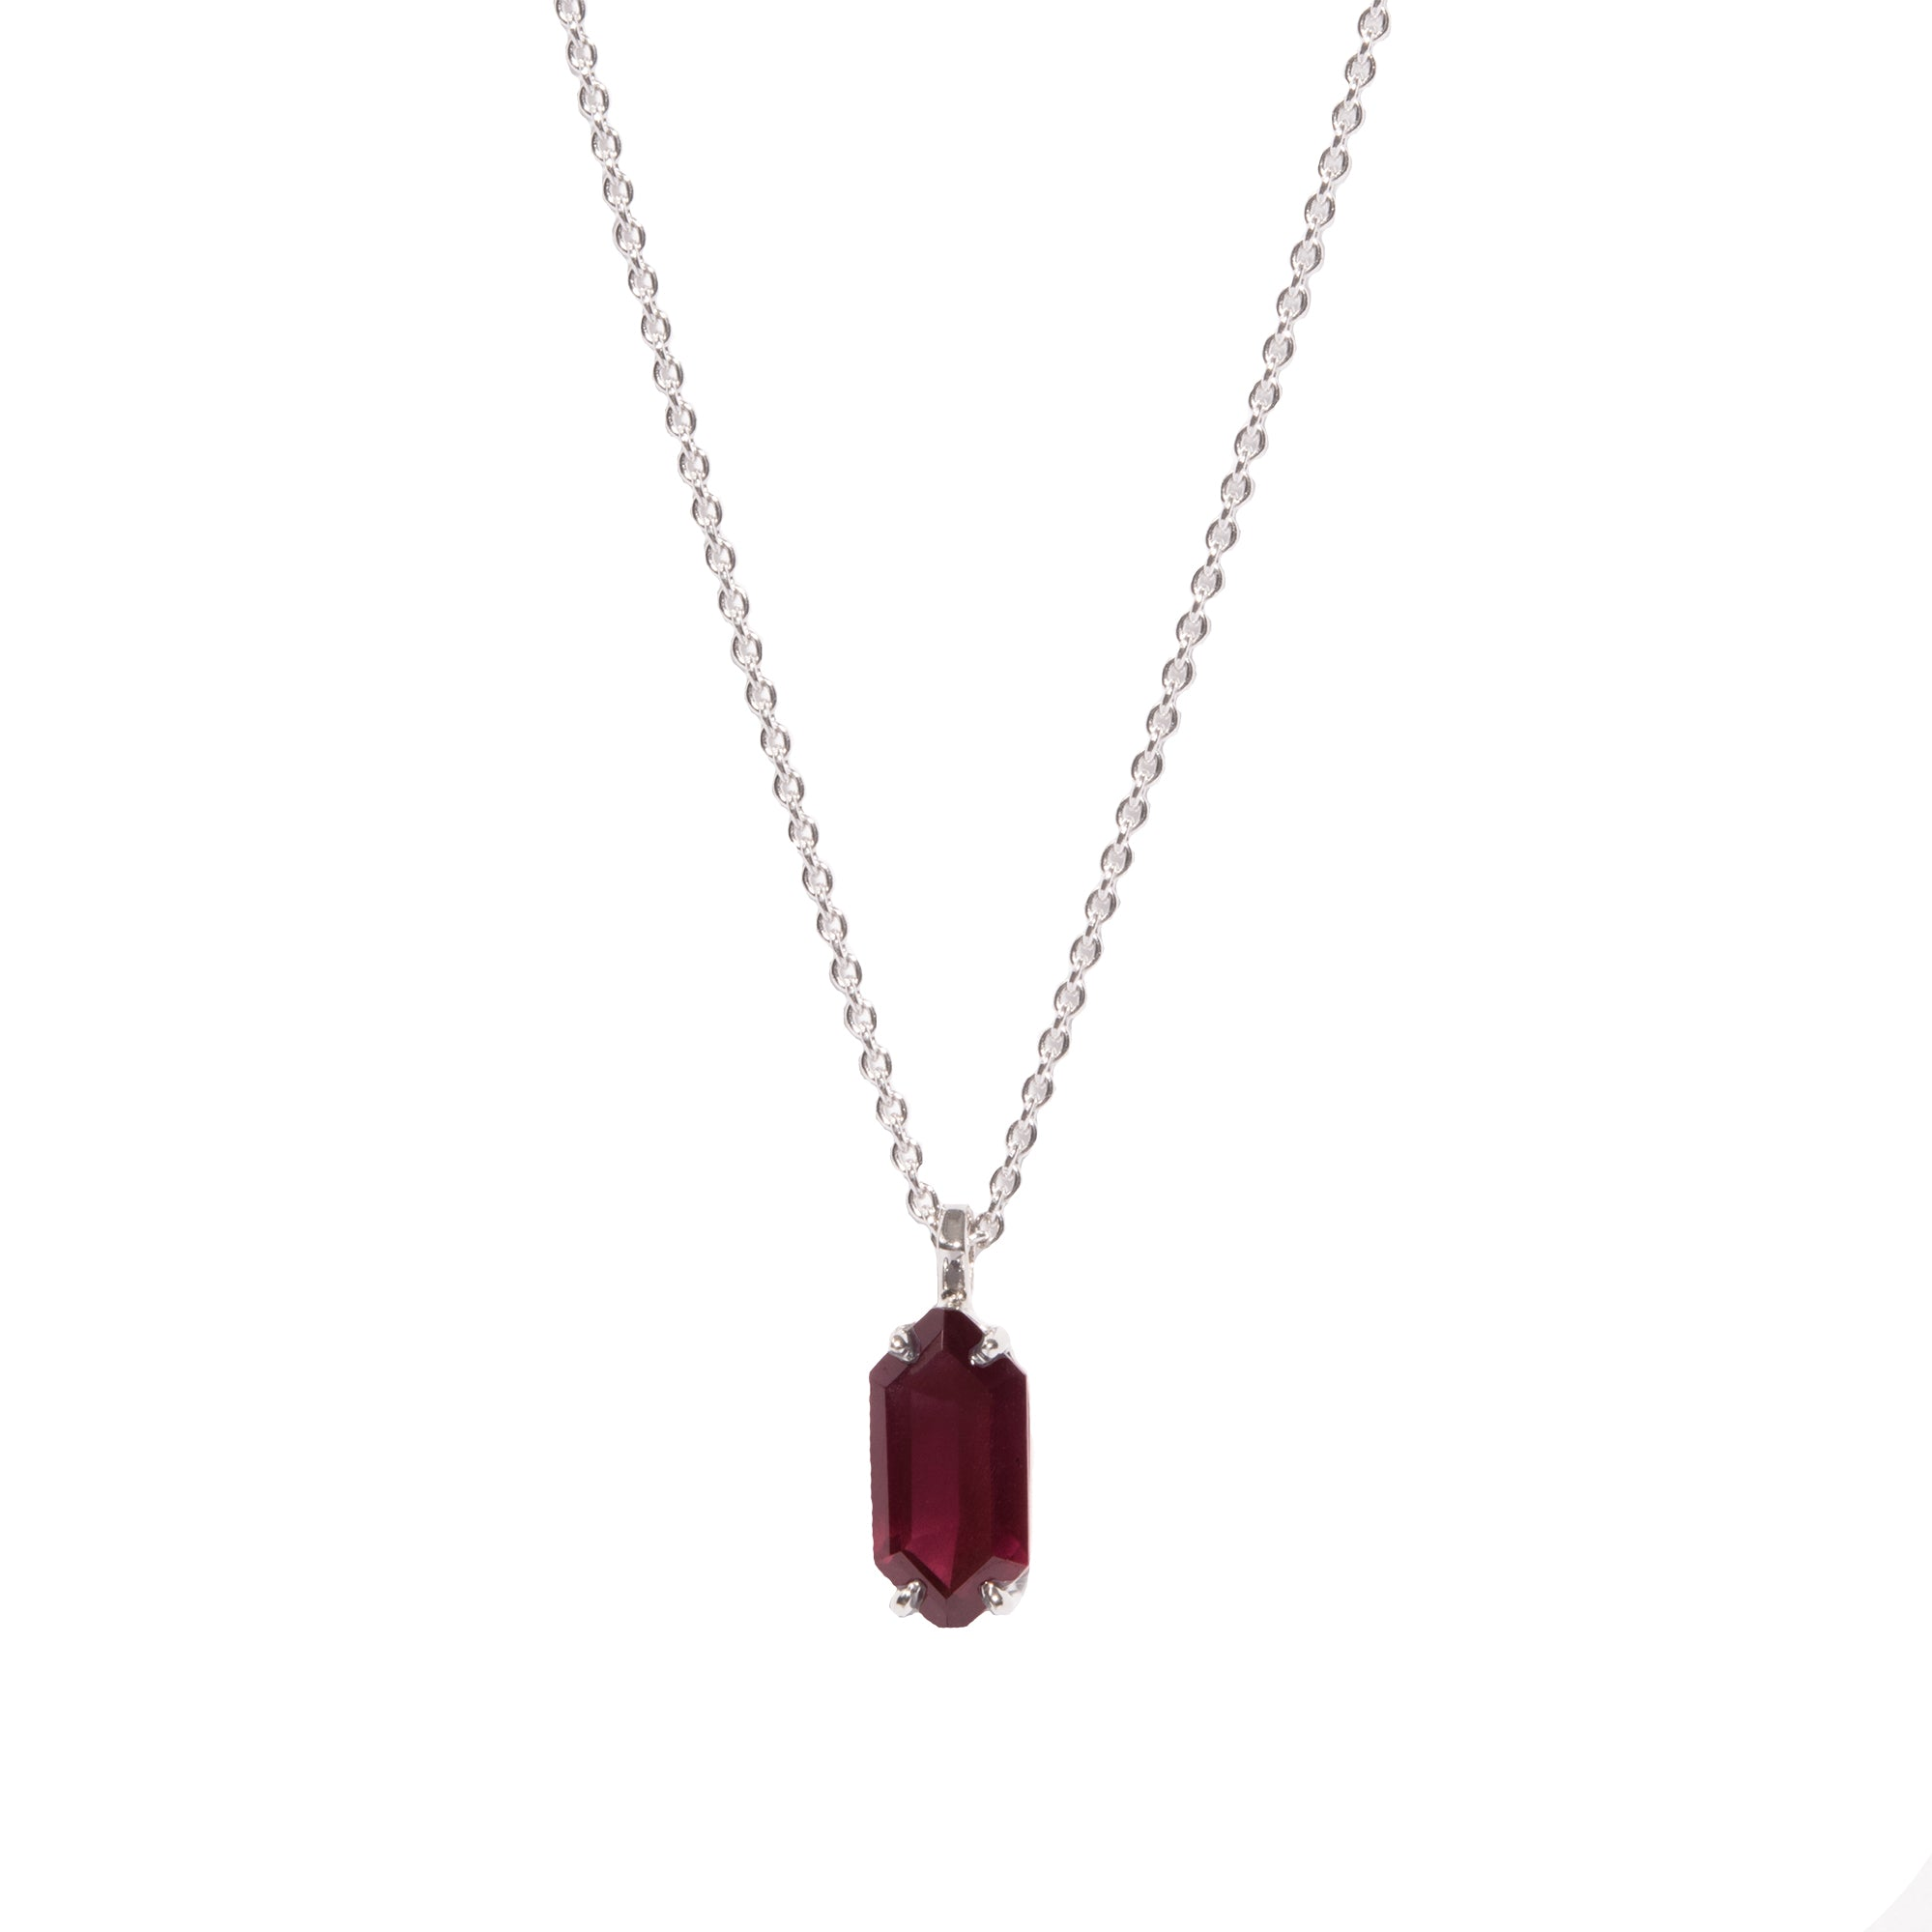 elements leiva pendant garnet necklace red product